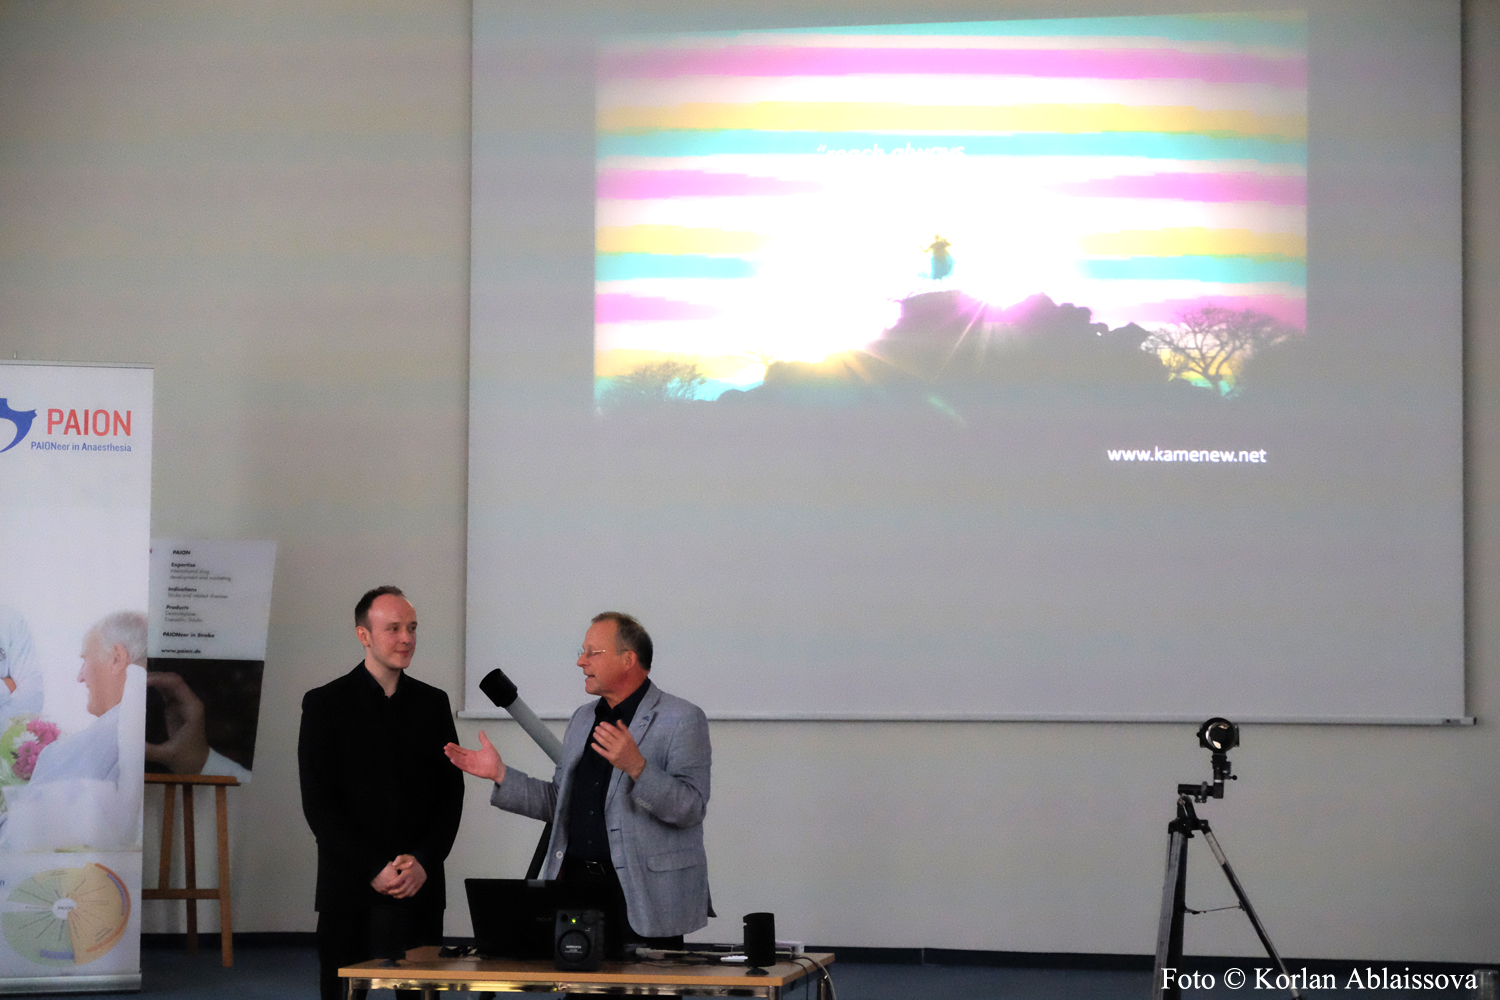 Eugen Kamenew (Astrophotographer of the Year 2014) and Dr. Wolfgang Söhngen, Founder, Chief Executive Officer of PAION AG